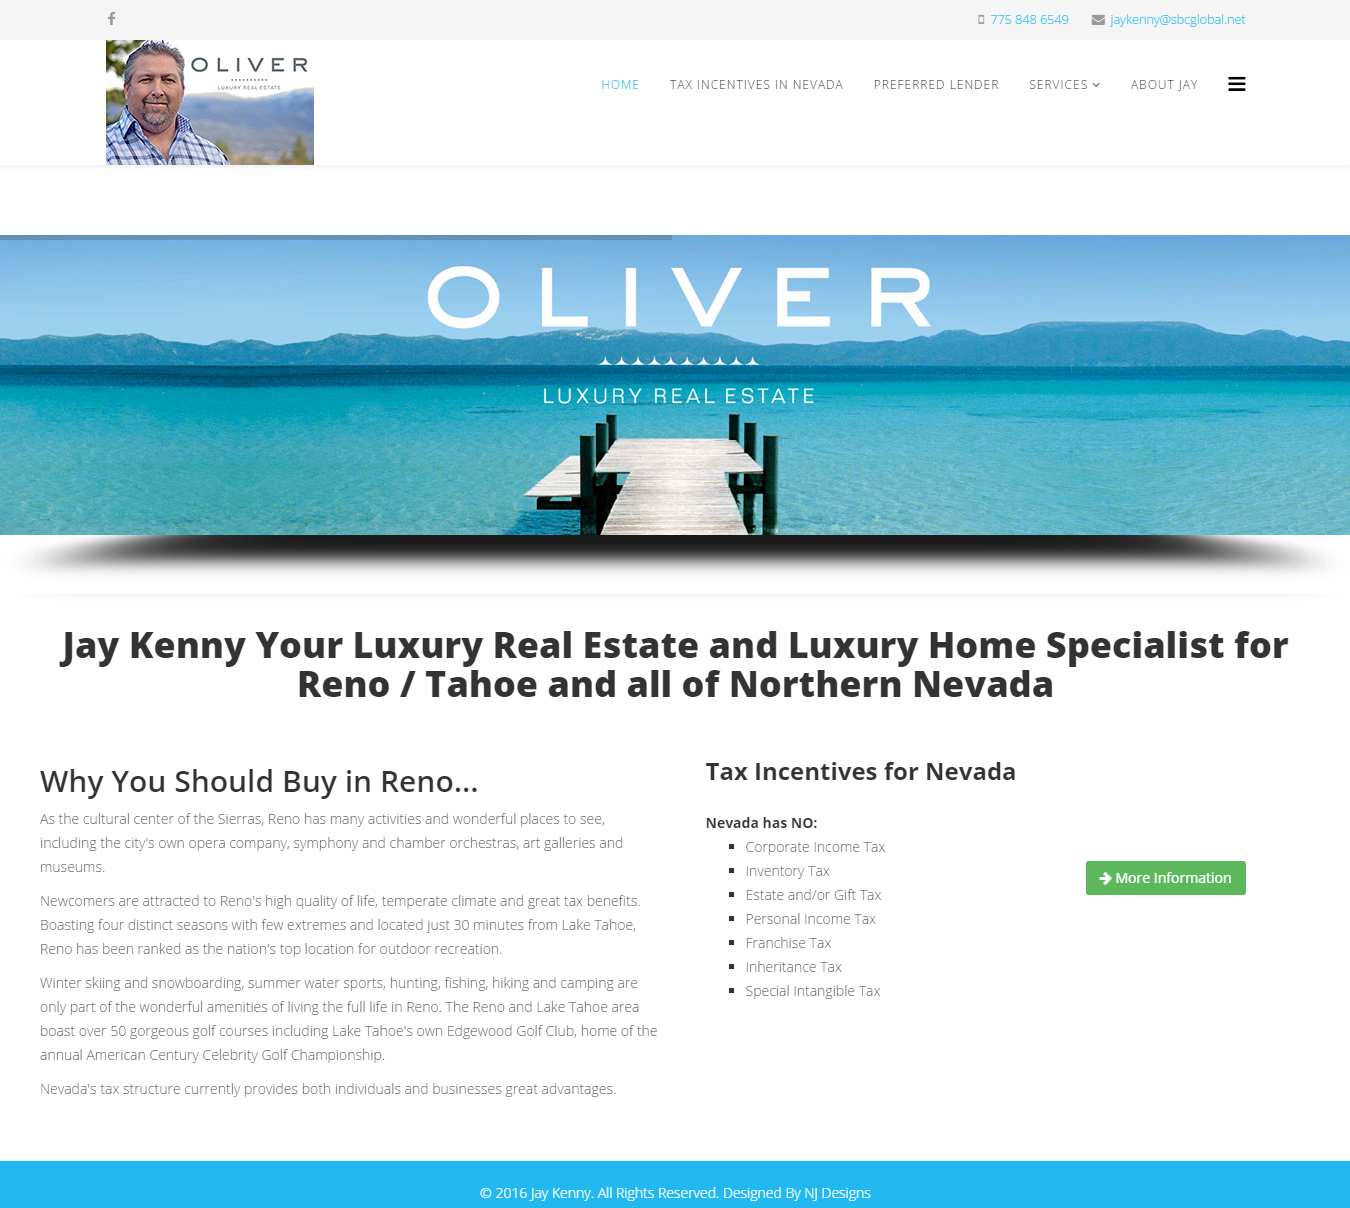 Jay Kenny, Oliver Luxury Real Estate